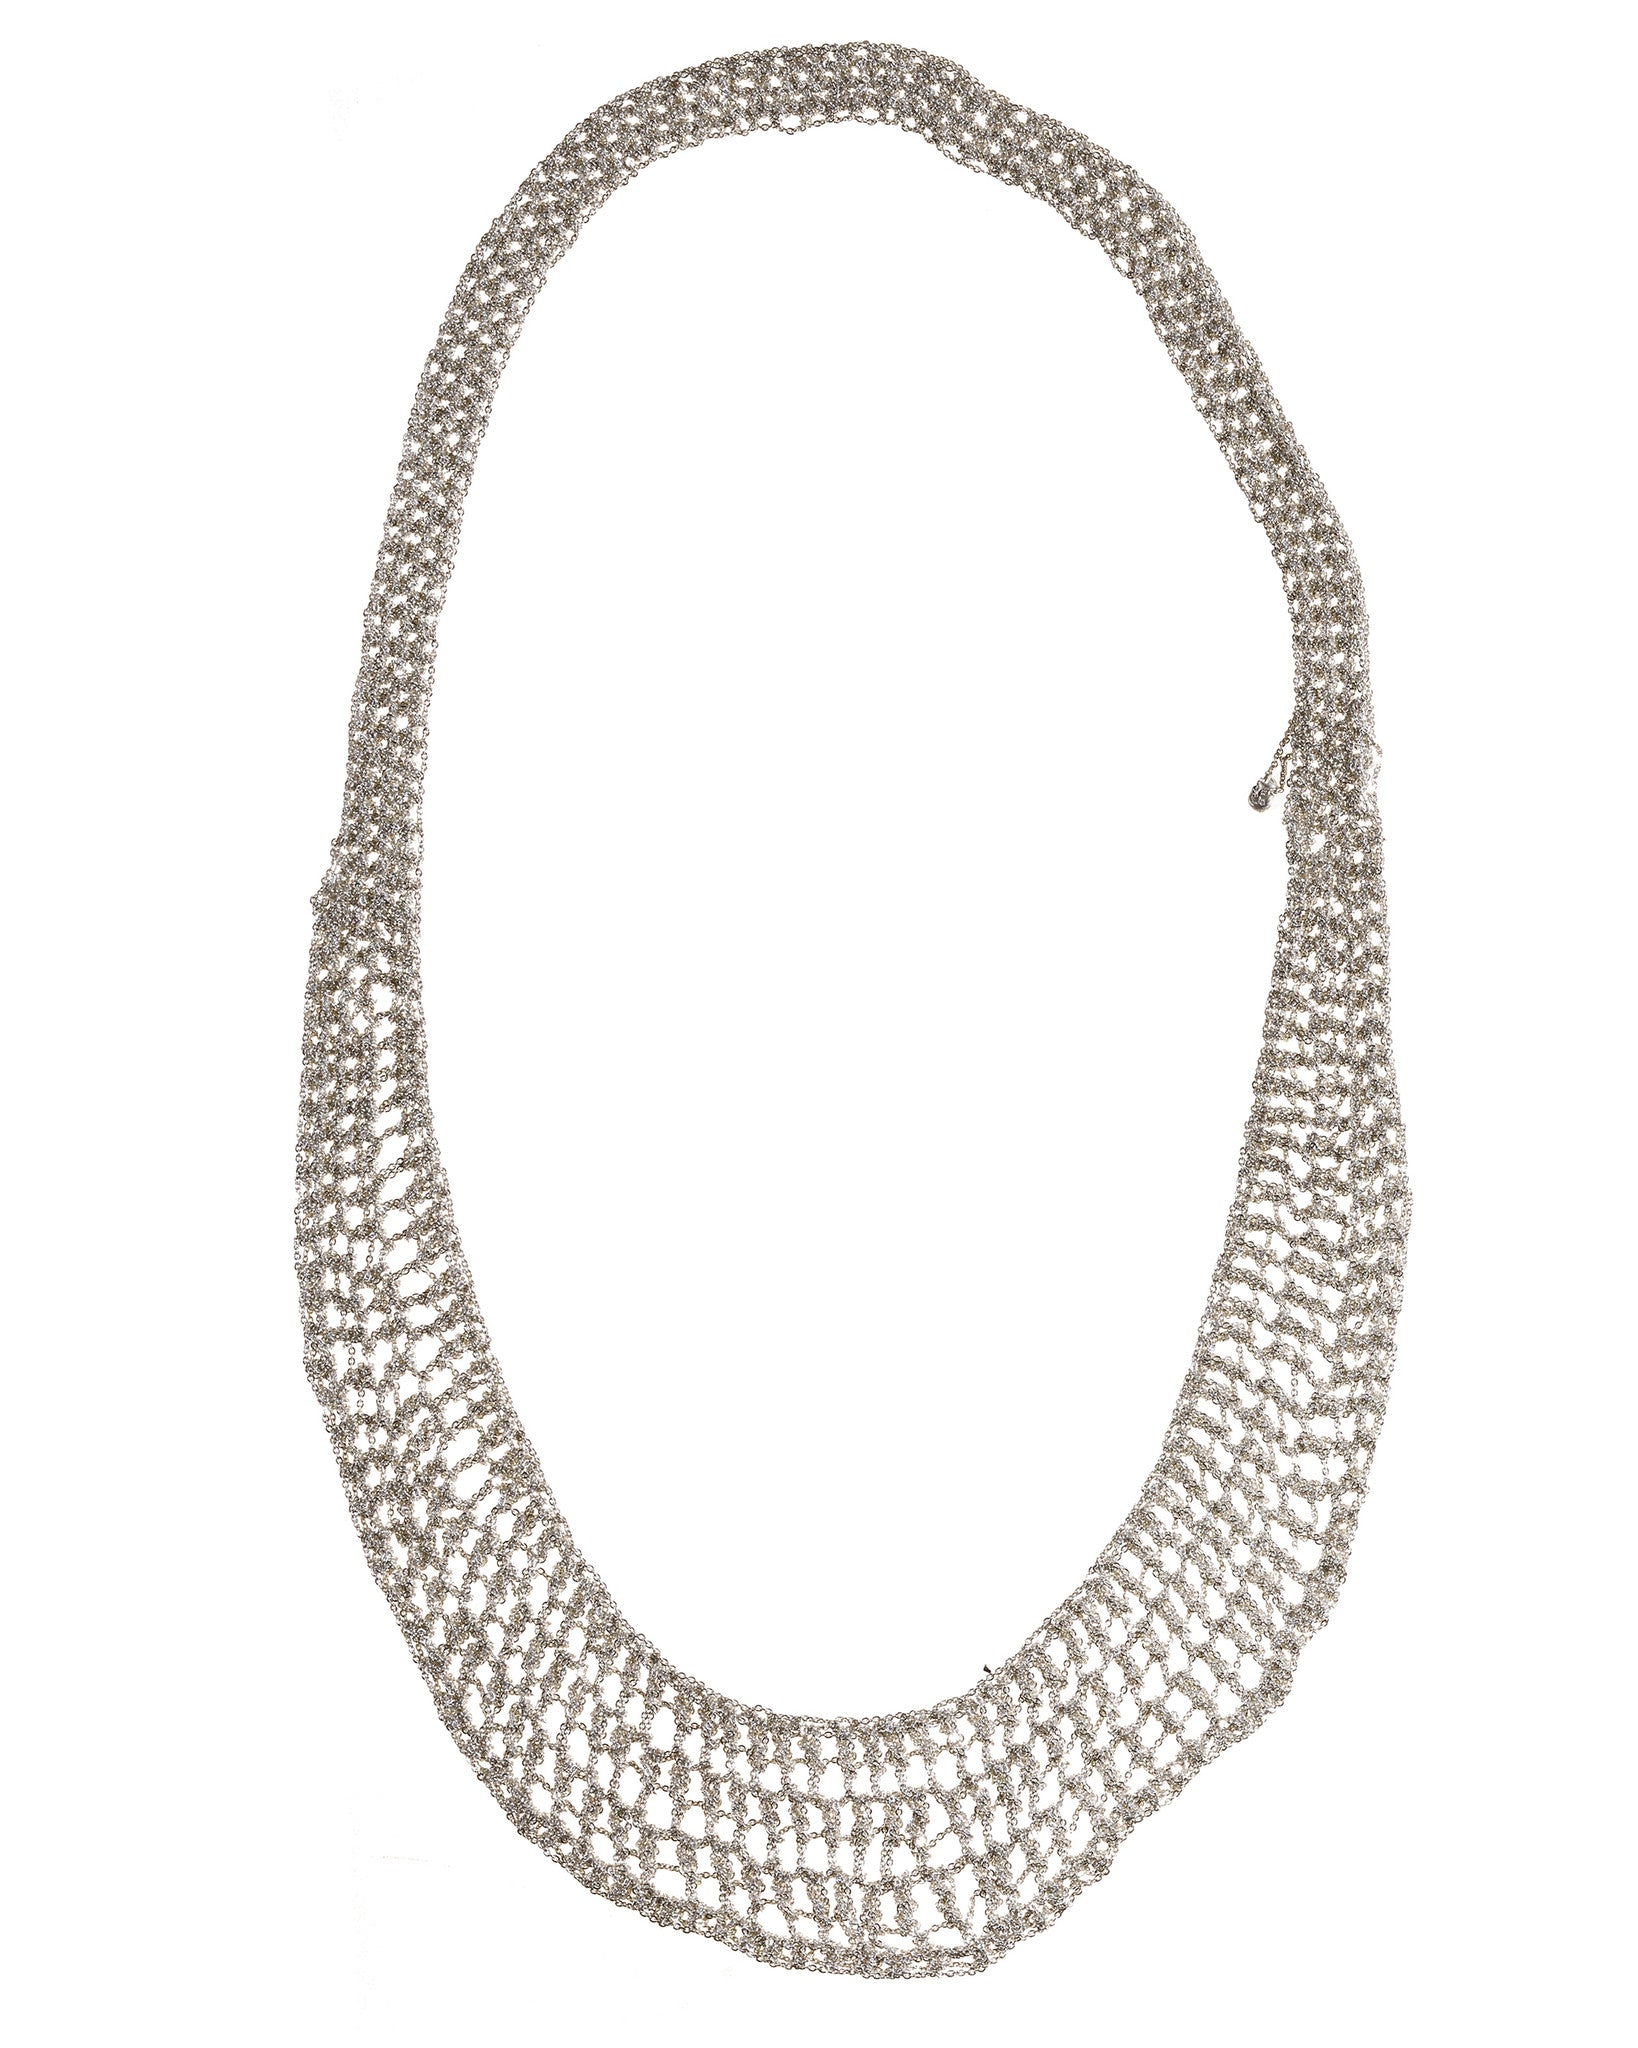 Lattice Collar in Silver